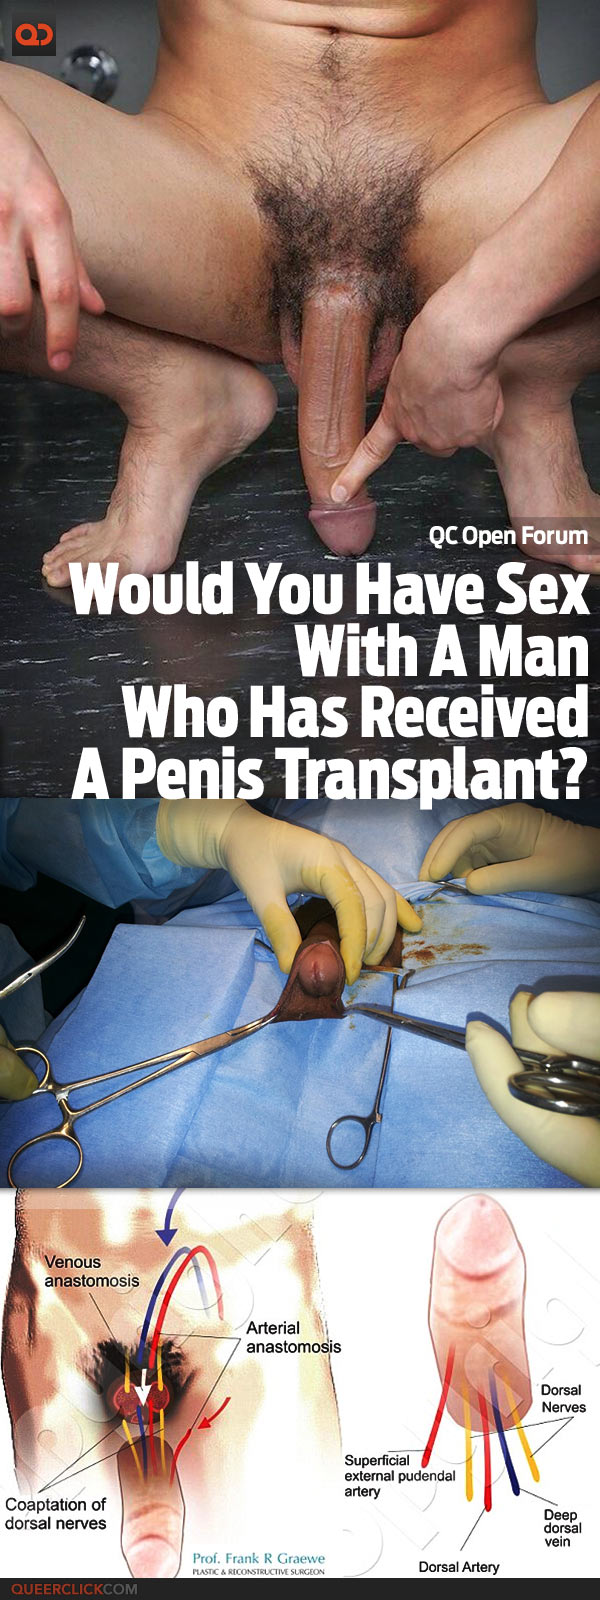 QC Open Forum: Would You Have Sex With A Man Who Has Received A Penis Transplant?